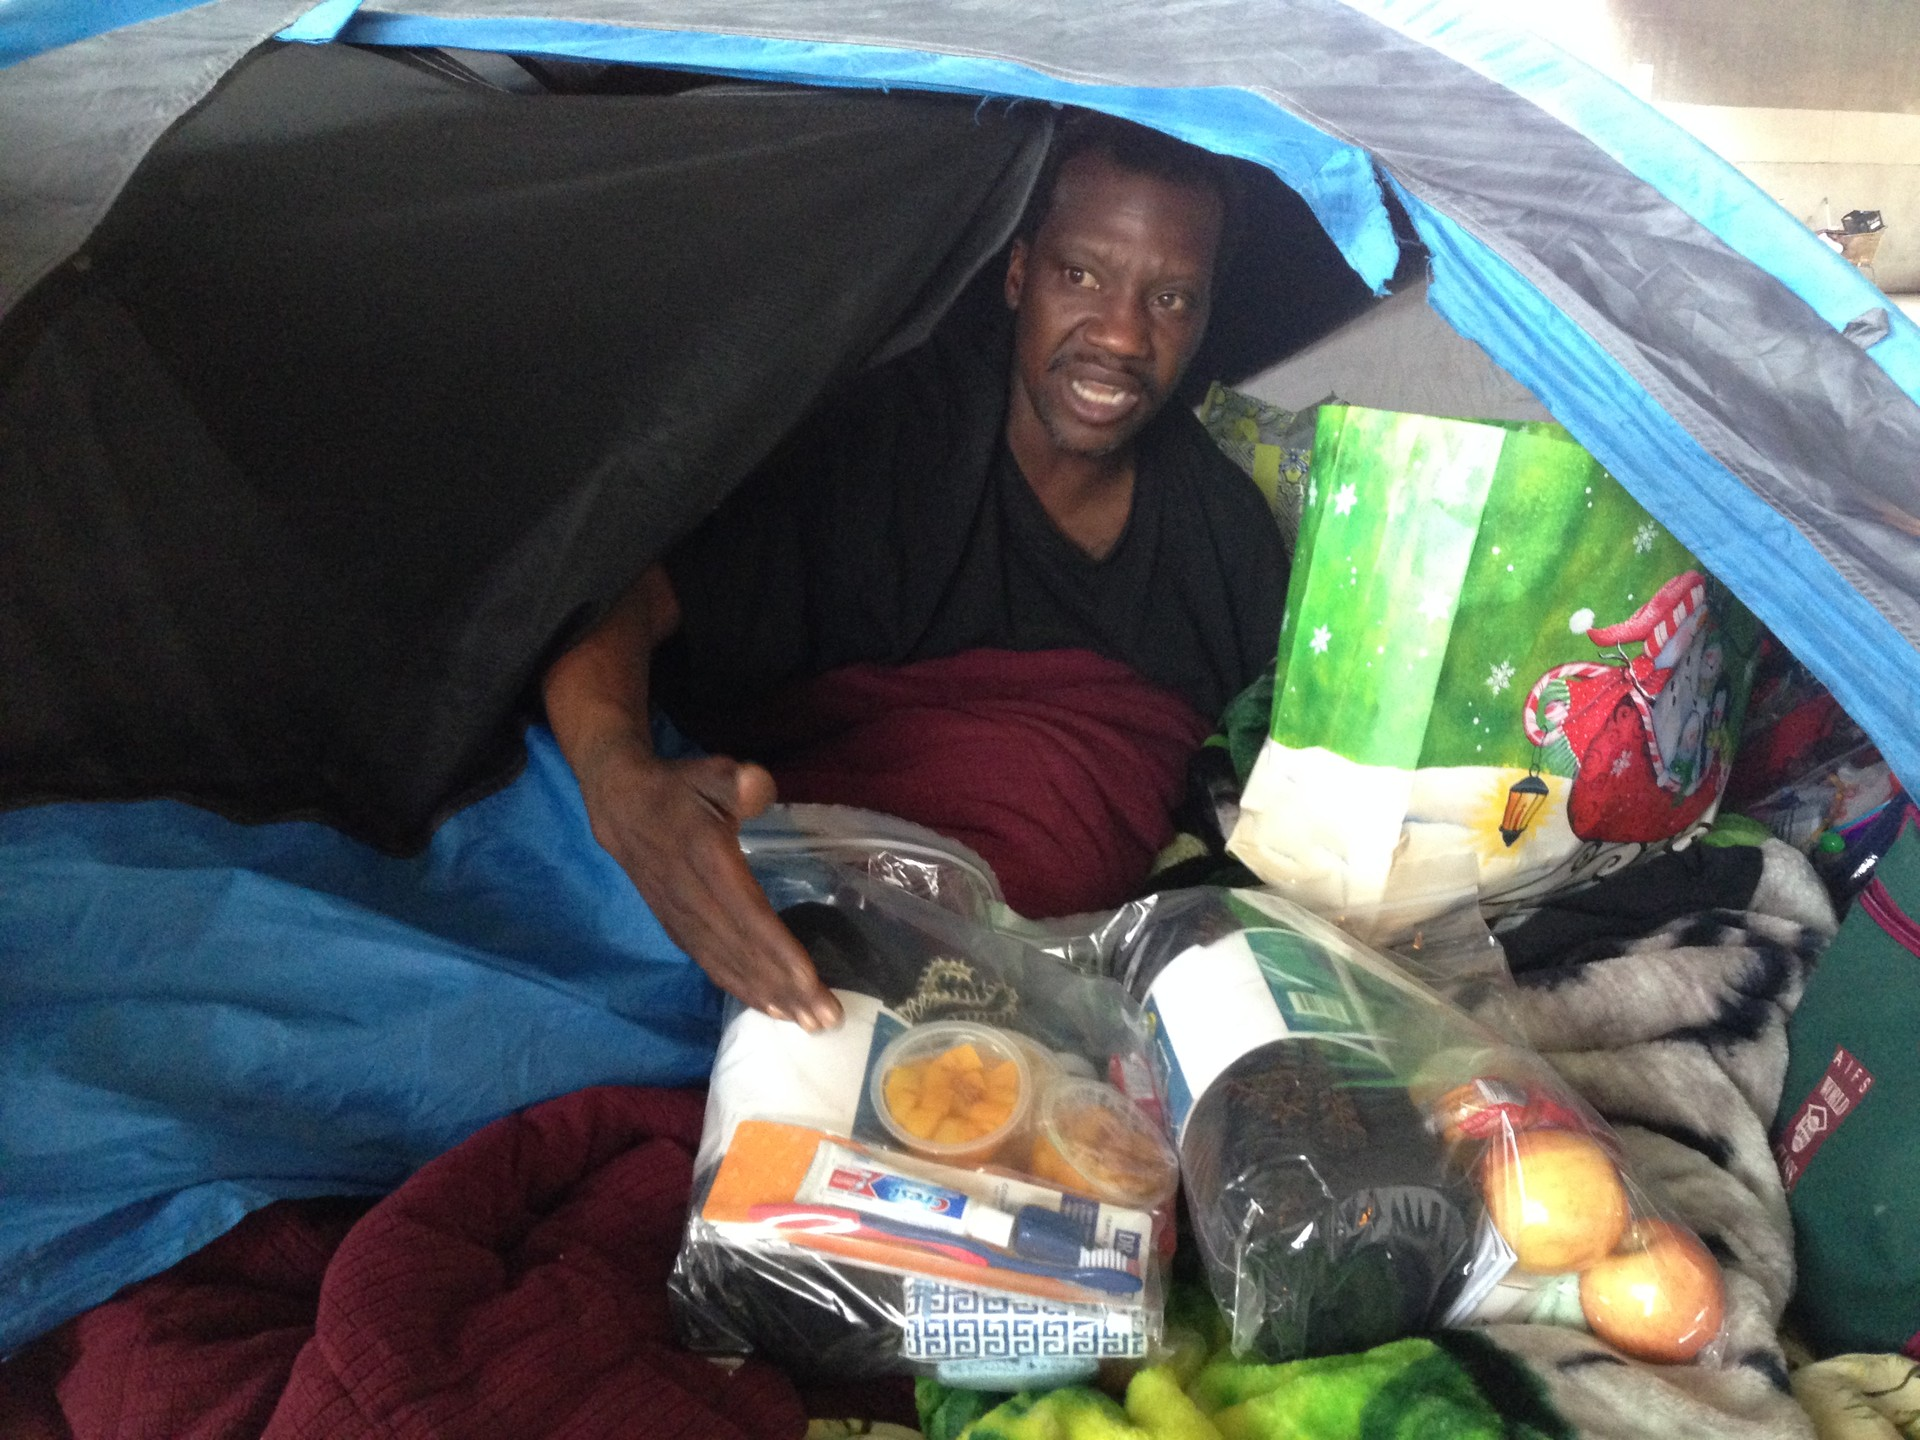 Terrance Dixon lives in an encampment at 35th and Peralta streets in Oakland.